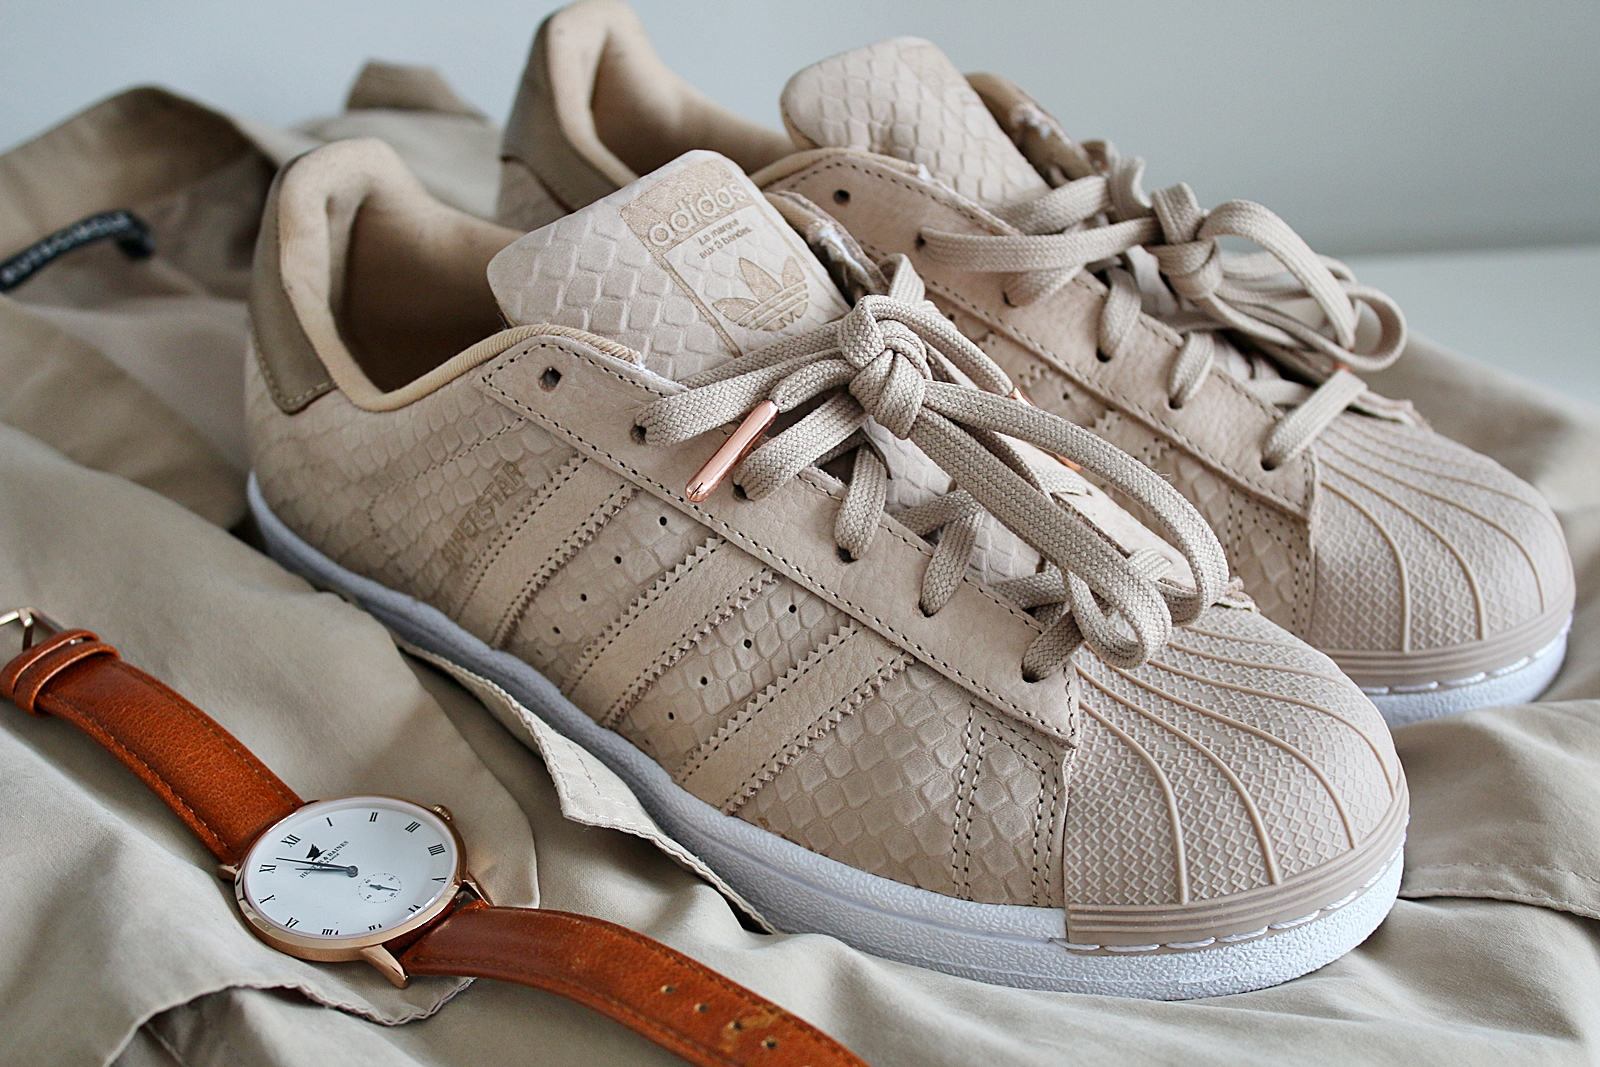 Nya Adidas superstar i pale nude